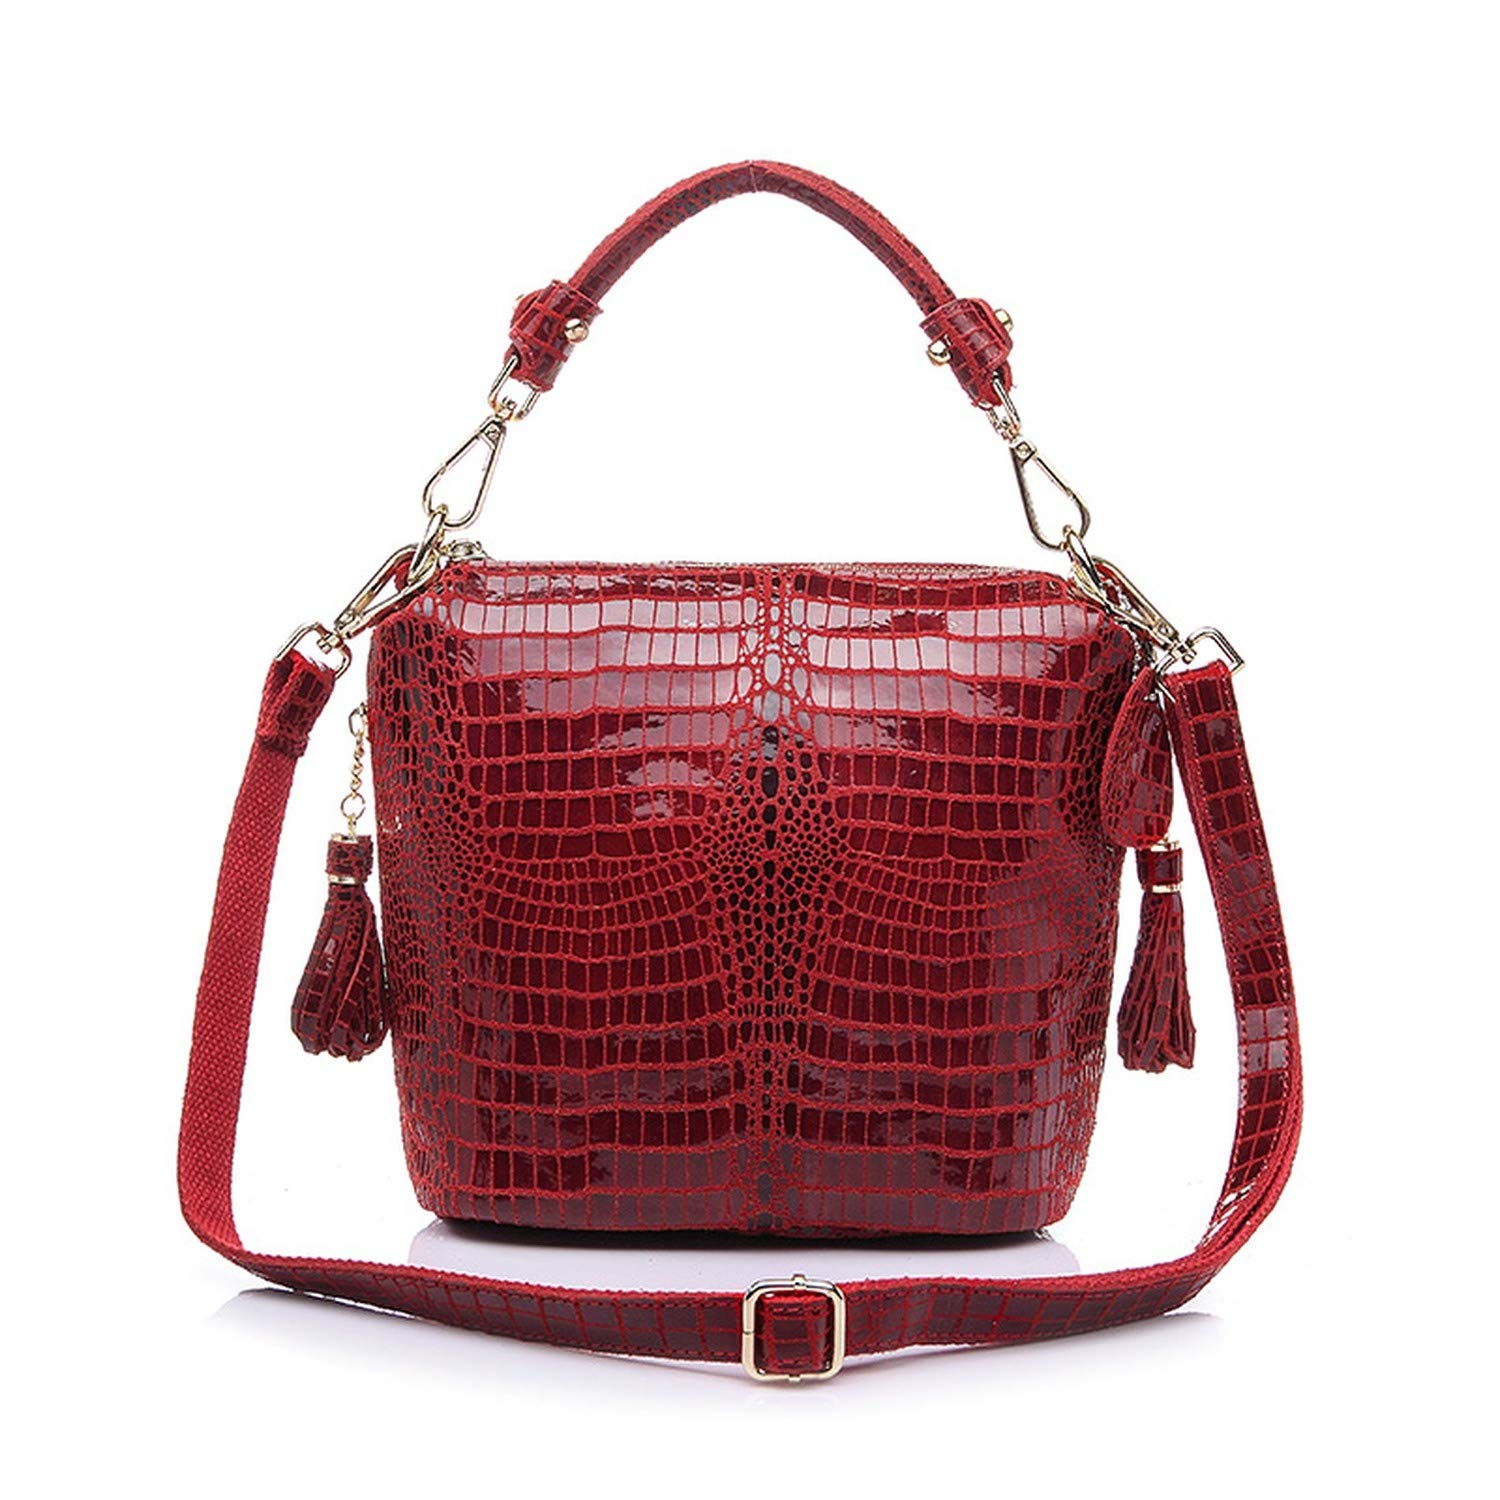 873c56a939 Amazon.com  Cherryi genuine leather handbags women small totes shoulder  crossbody bags ladies classic